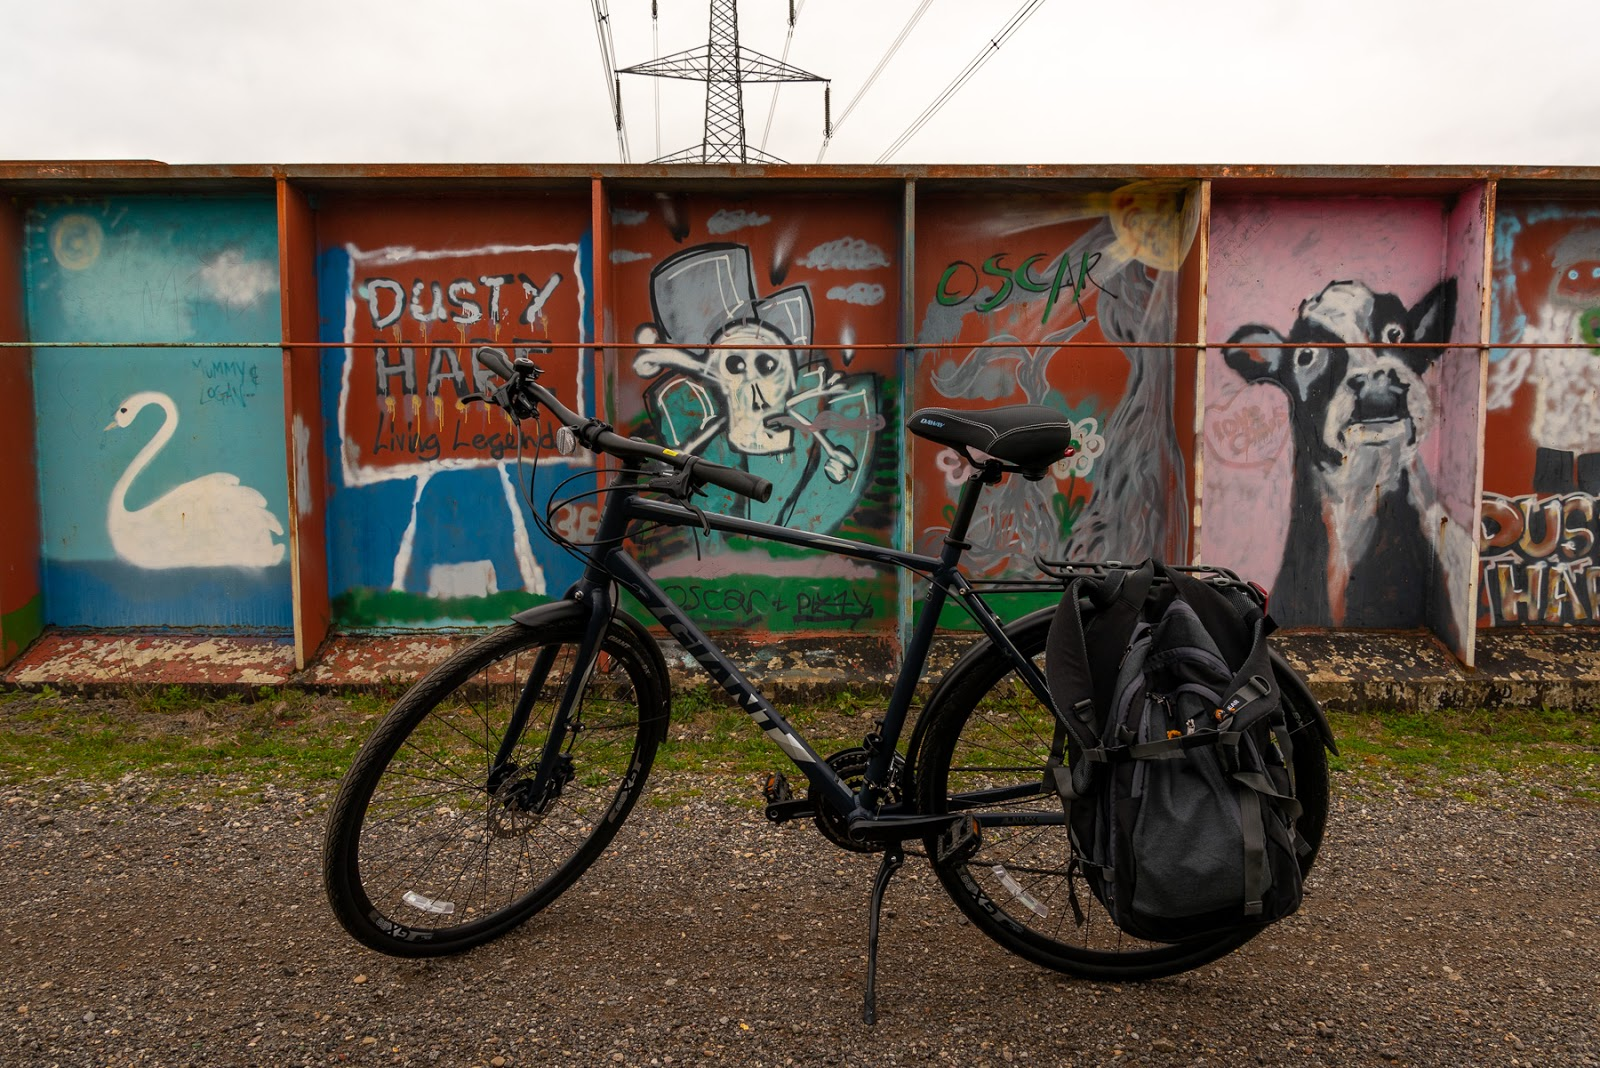 My bike in front of graffiti